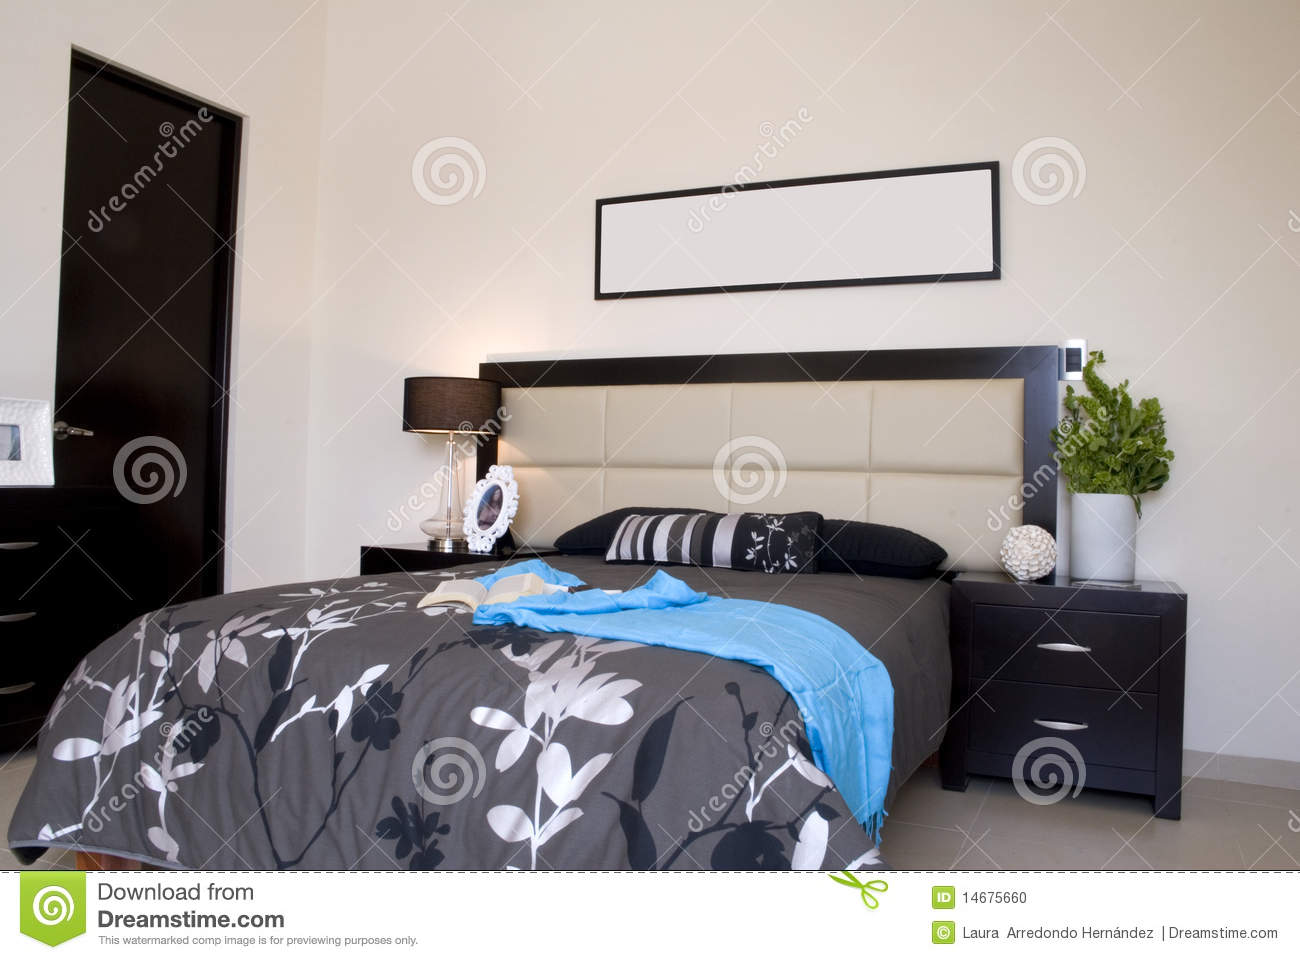 chambre coucher noire photo stock image 14675660. Black Bedroom Furniture Sets. Home Design Ideas